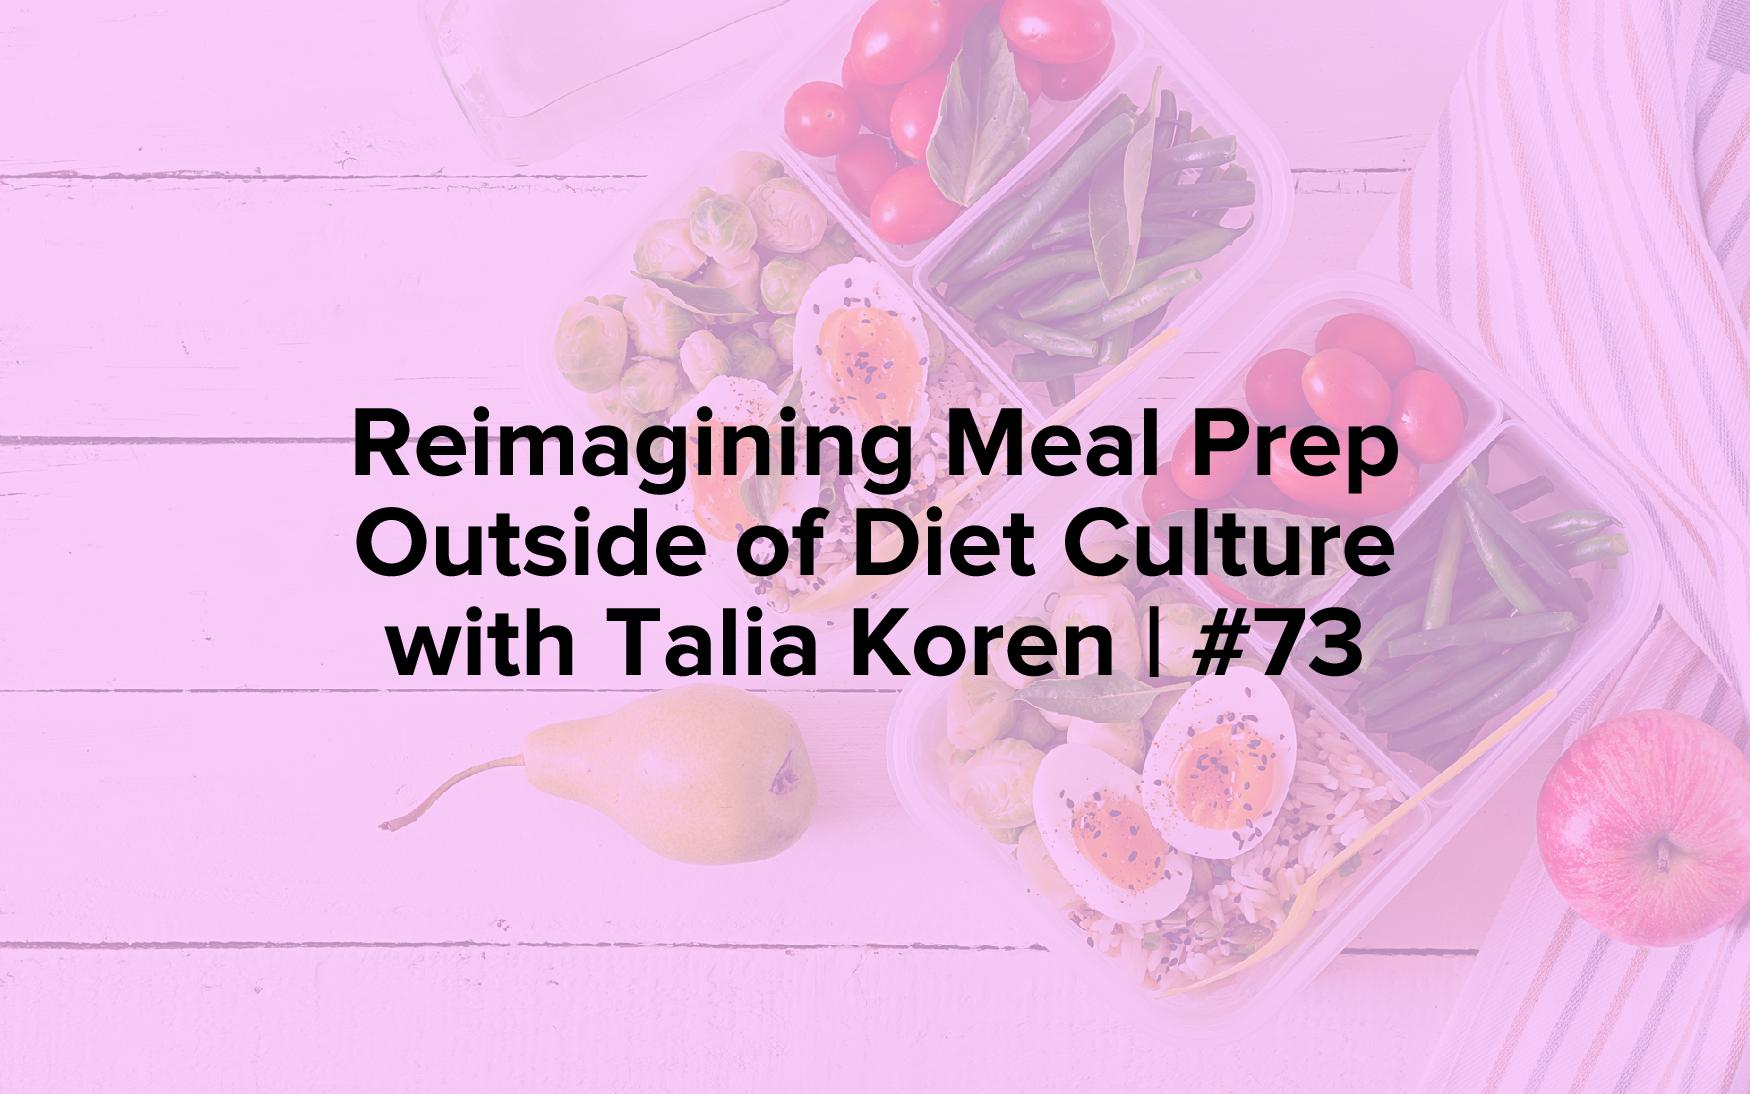 Reimagining Meal Prep Outside of Diet Culture with Talia Koren | #73